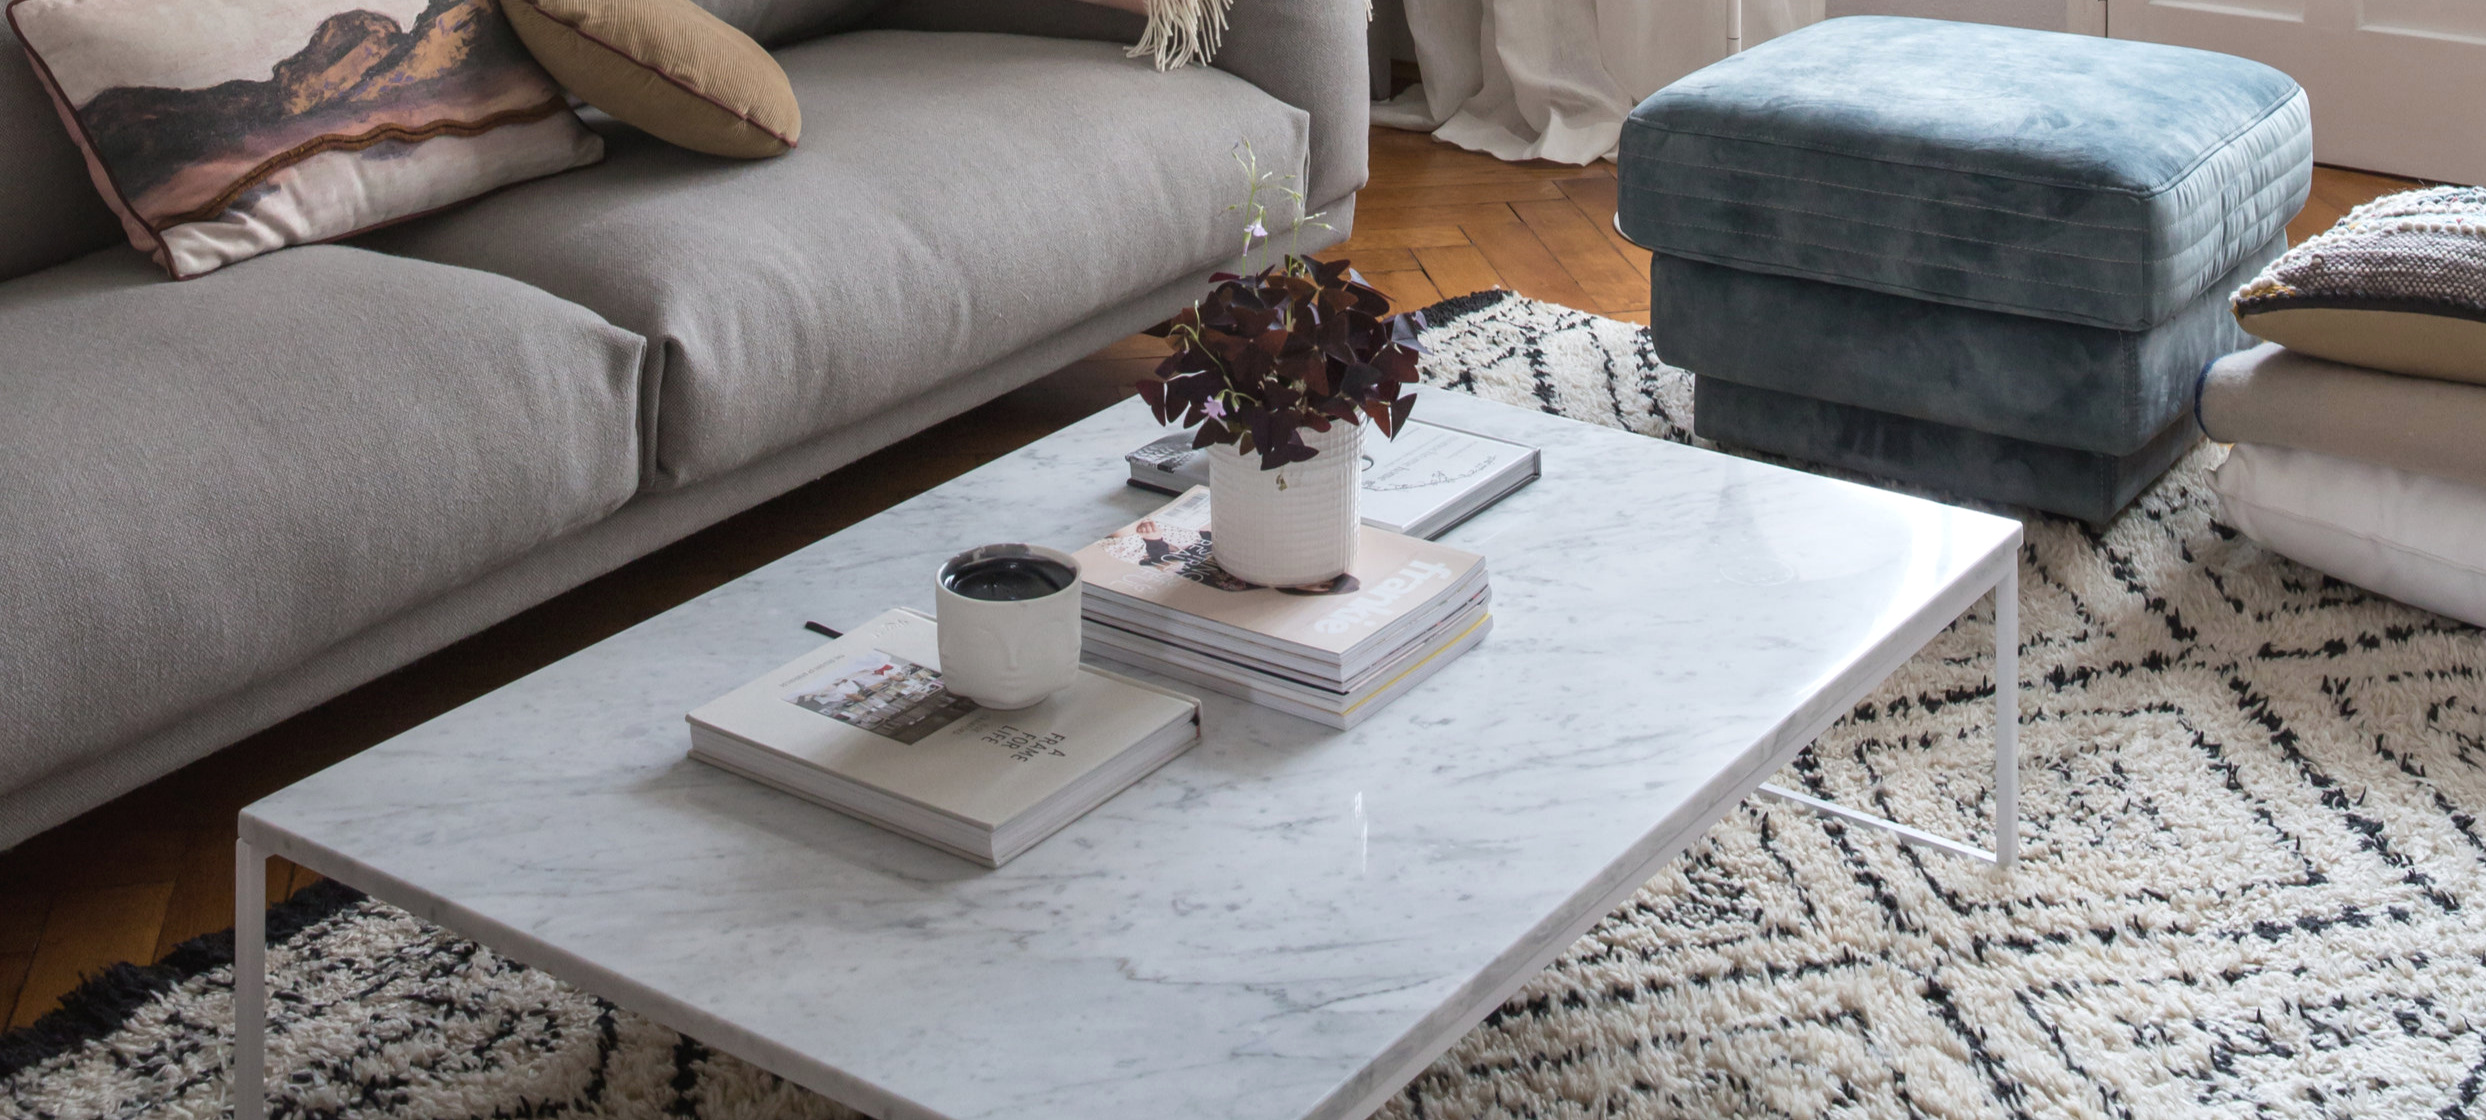 MYCS+Sofa+Table+Marble+Holly+Becker